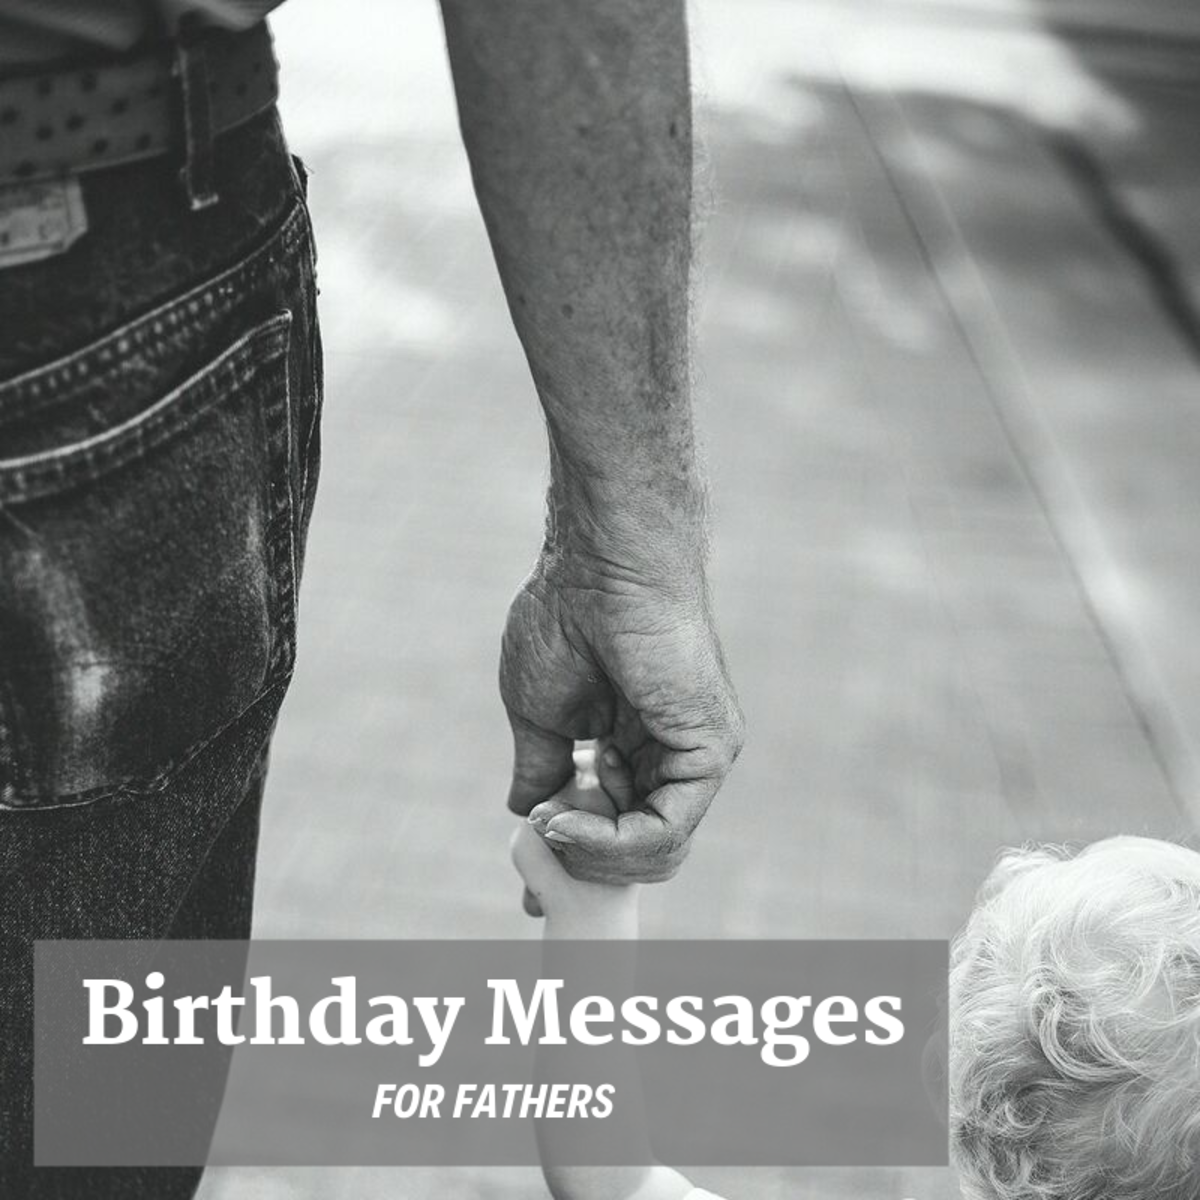 Birthday Wishes for Your Dad: What to Write in a Card